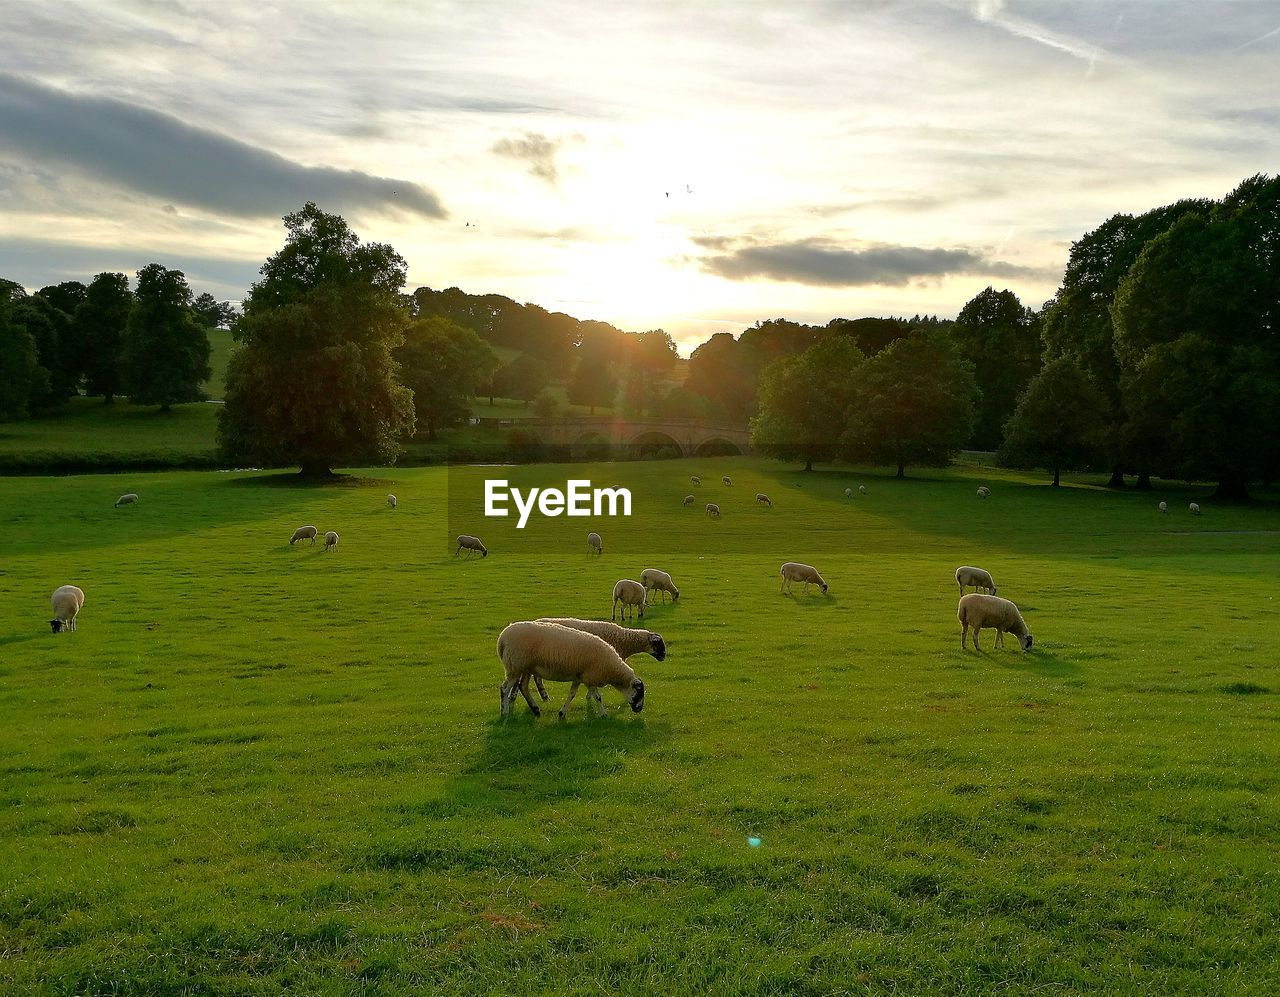 Sheep Grazing On Field Against Sky During Sunset